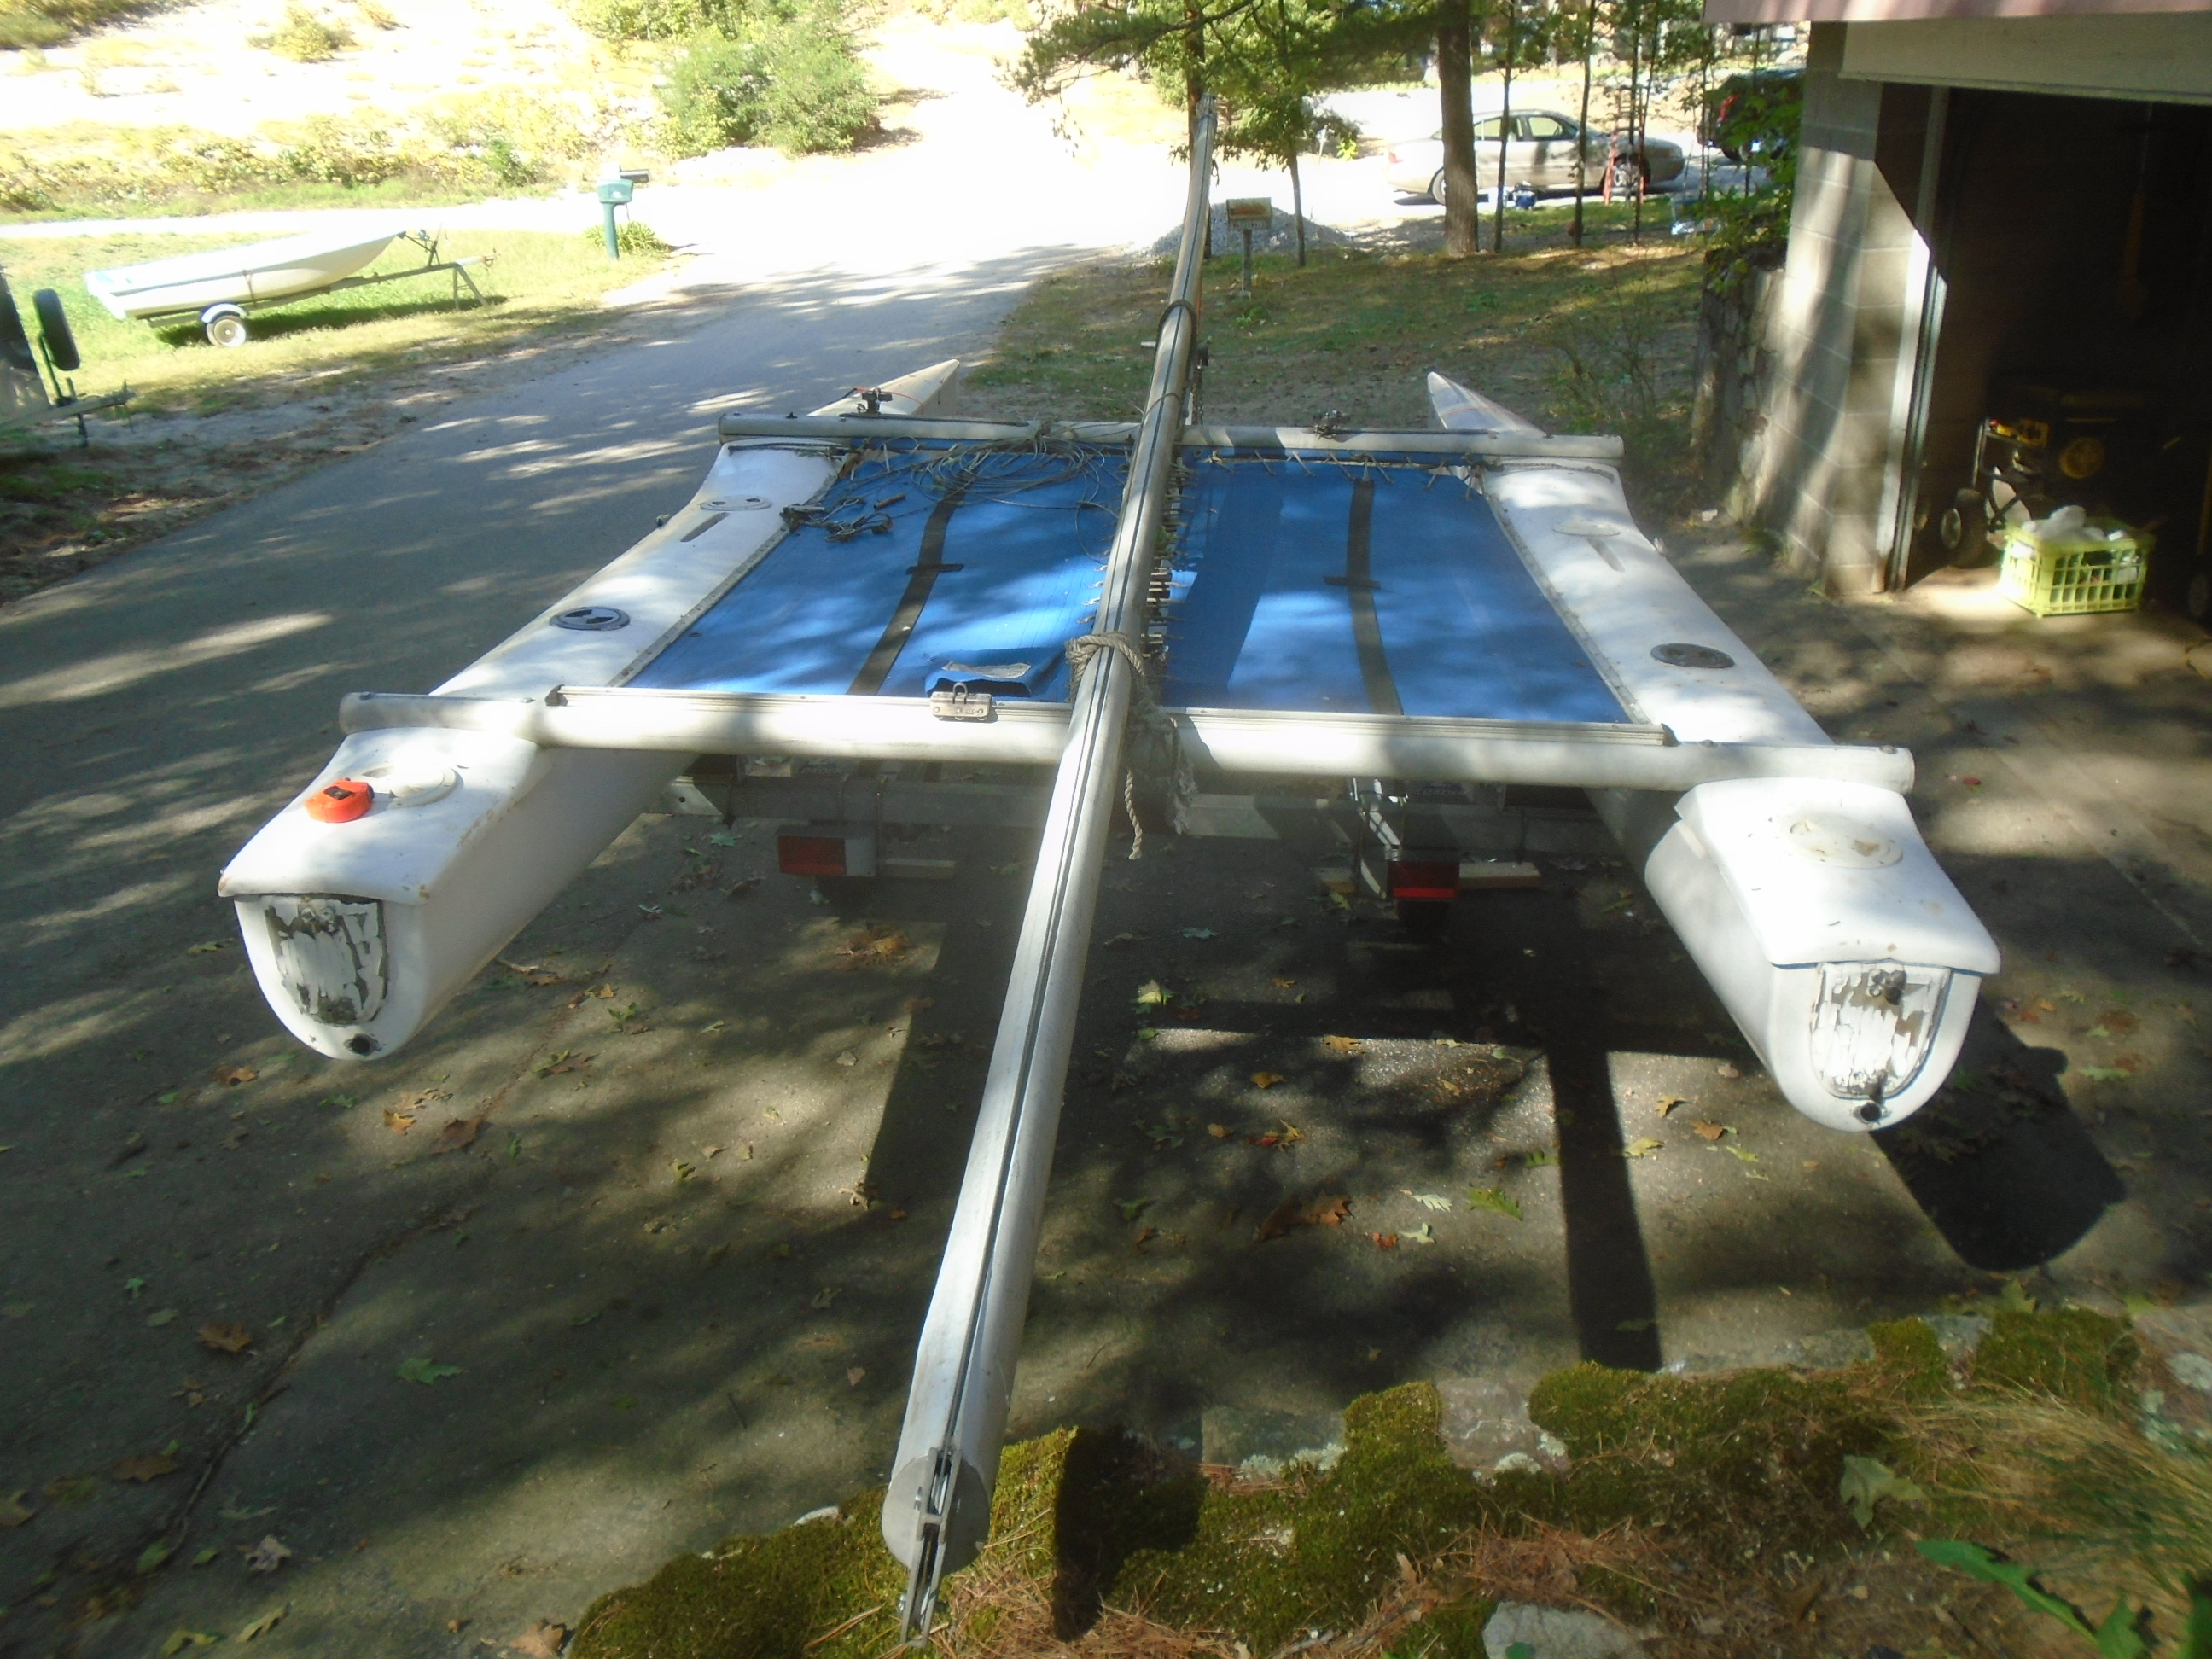 Picture of The Surly Mermaid: Catamaran to Recreational Cruiser Conversion